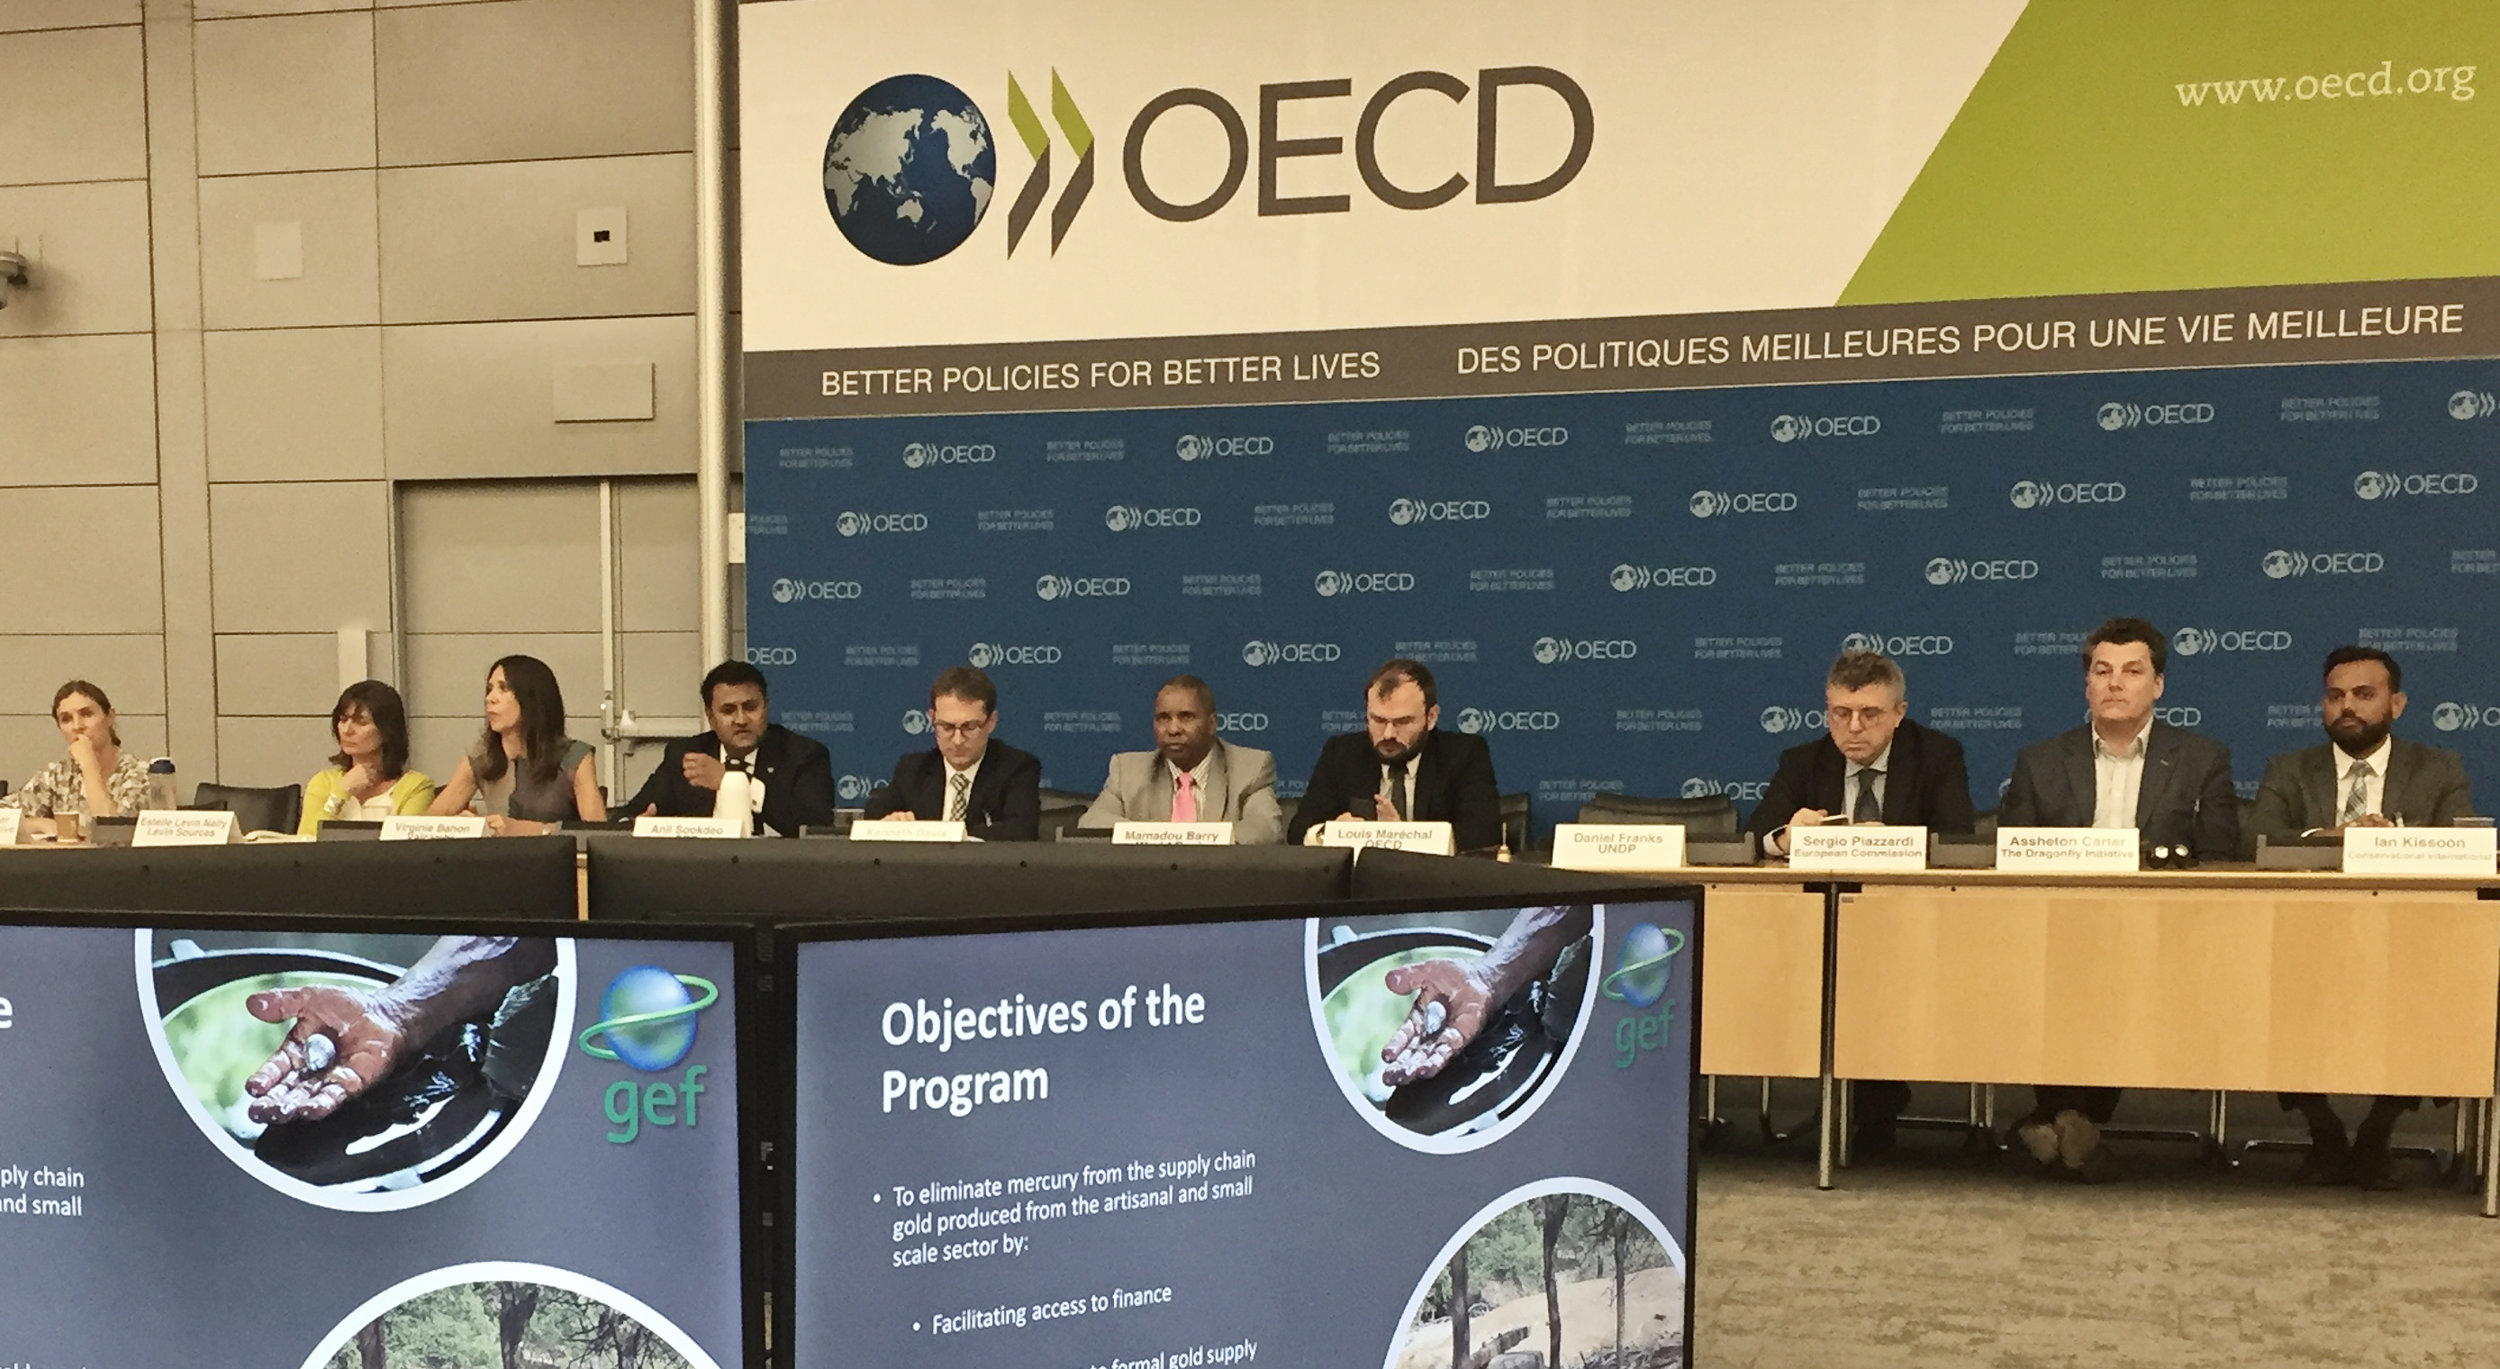 A commitment to launch a prize-driven challenge to attract innovators, entrepreneurs, and engineers to utilize the vast powers of technology in solving this growing global problem was well received at the OECD.  PARIS – APRIL 20, 2018